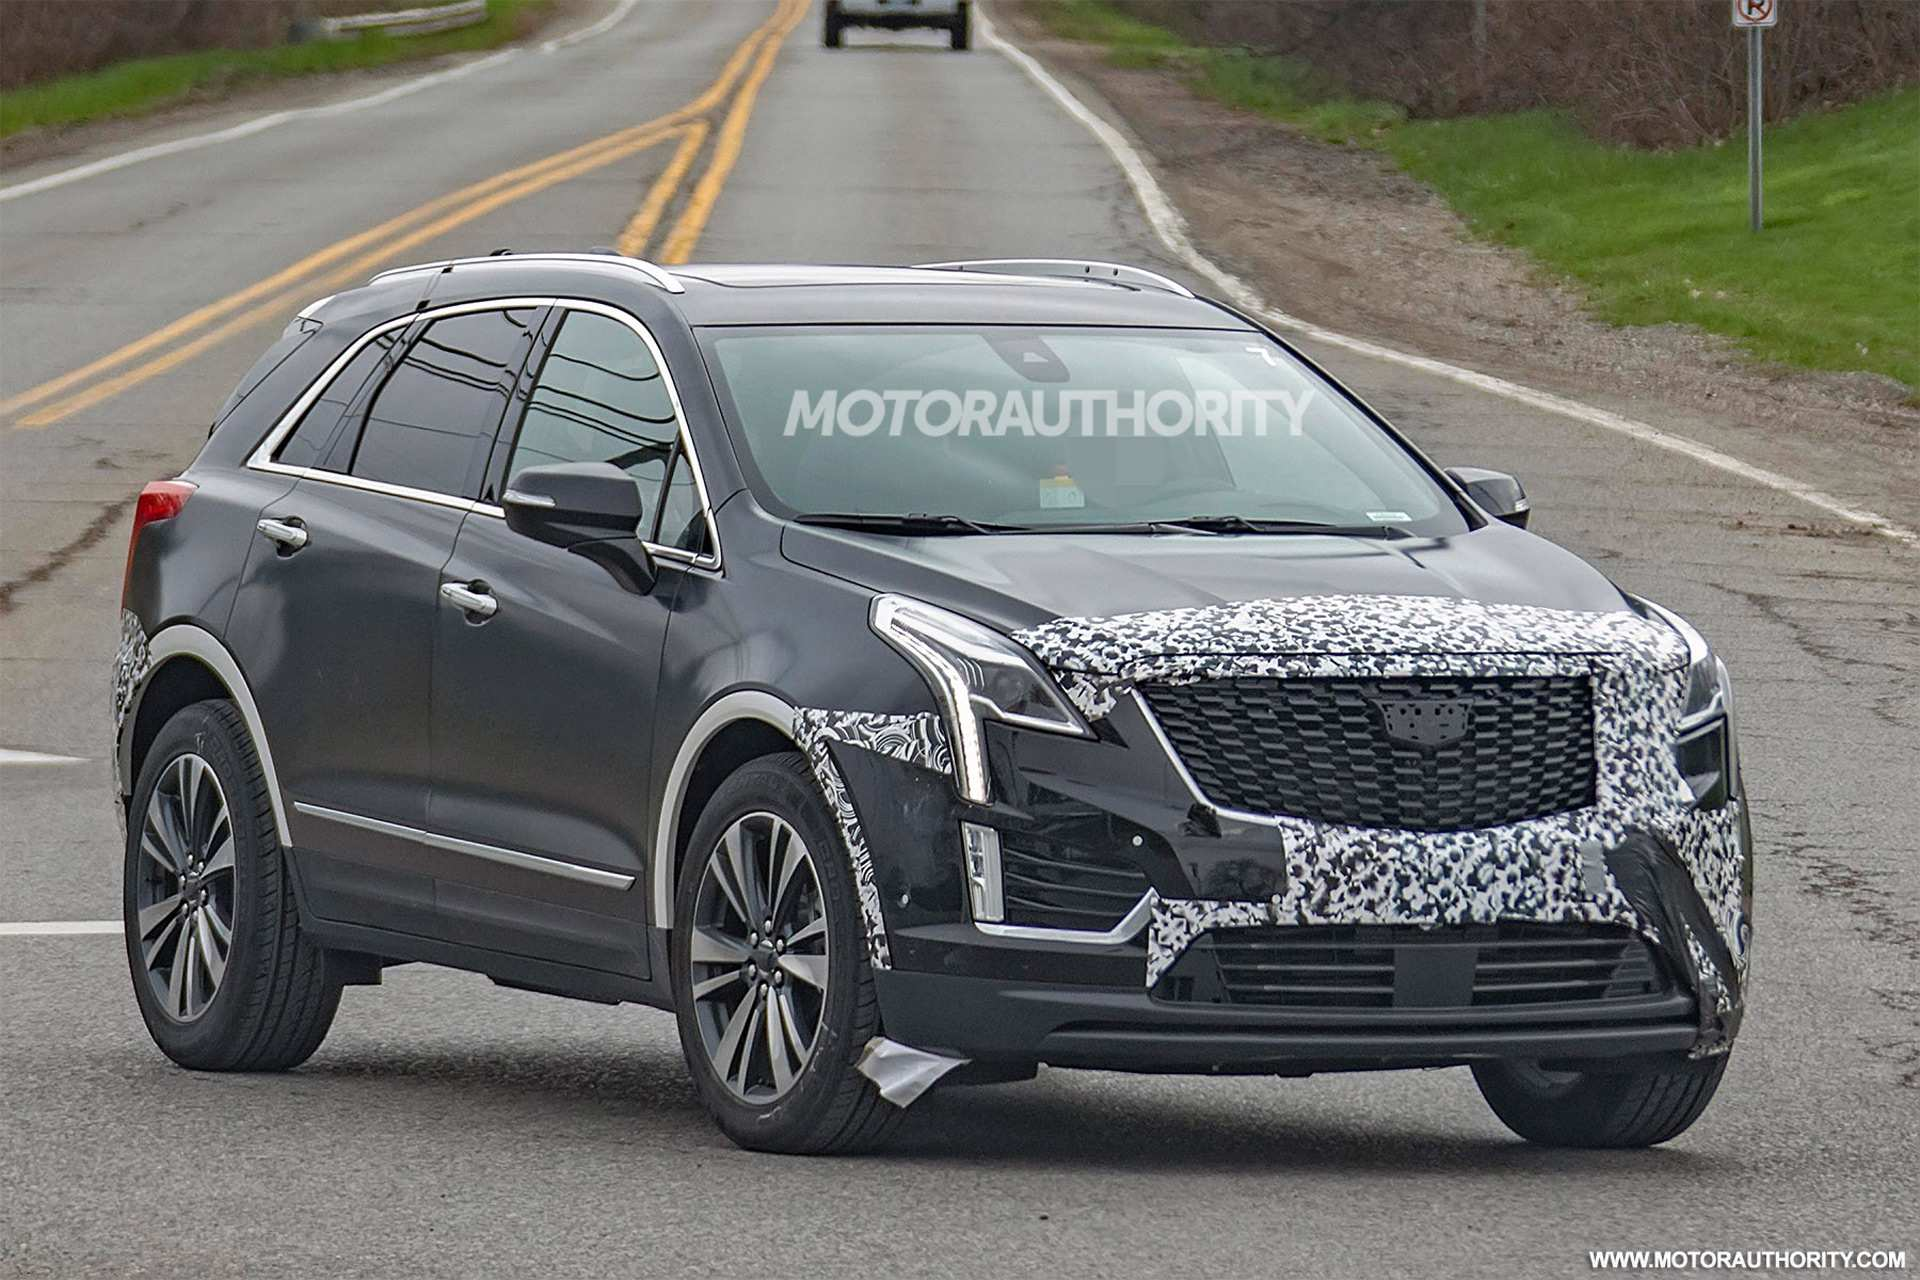 18 New Cadillac Midsize Suv 2020 Picture